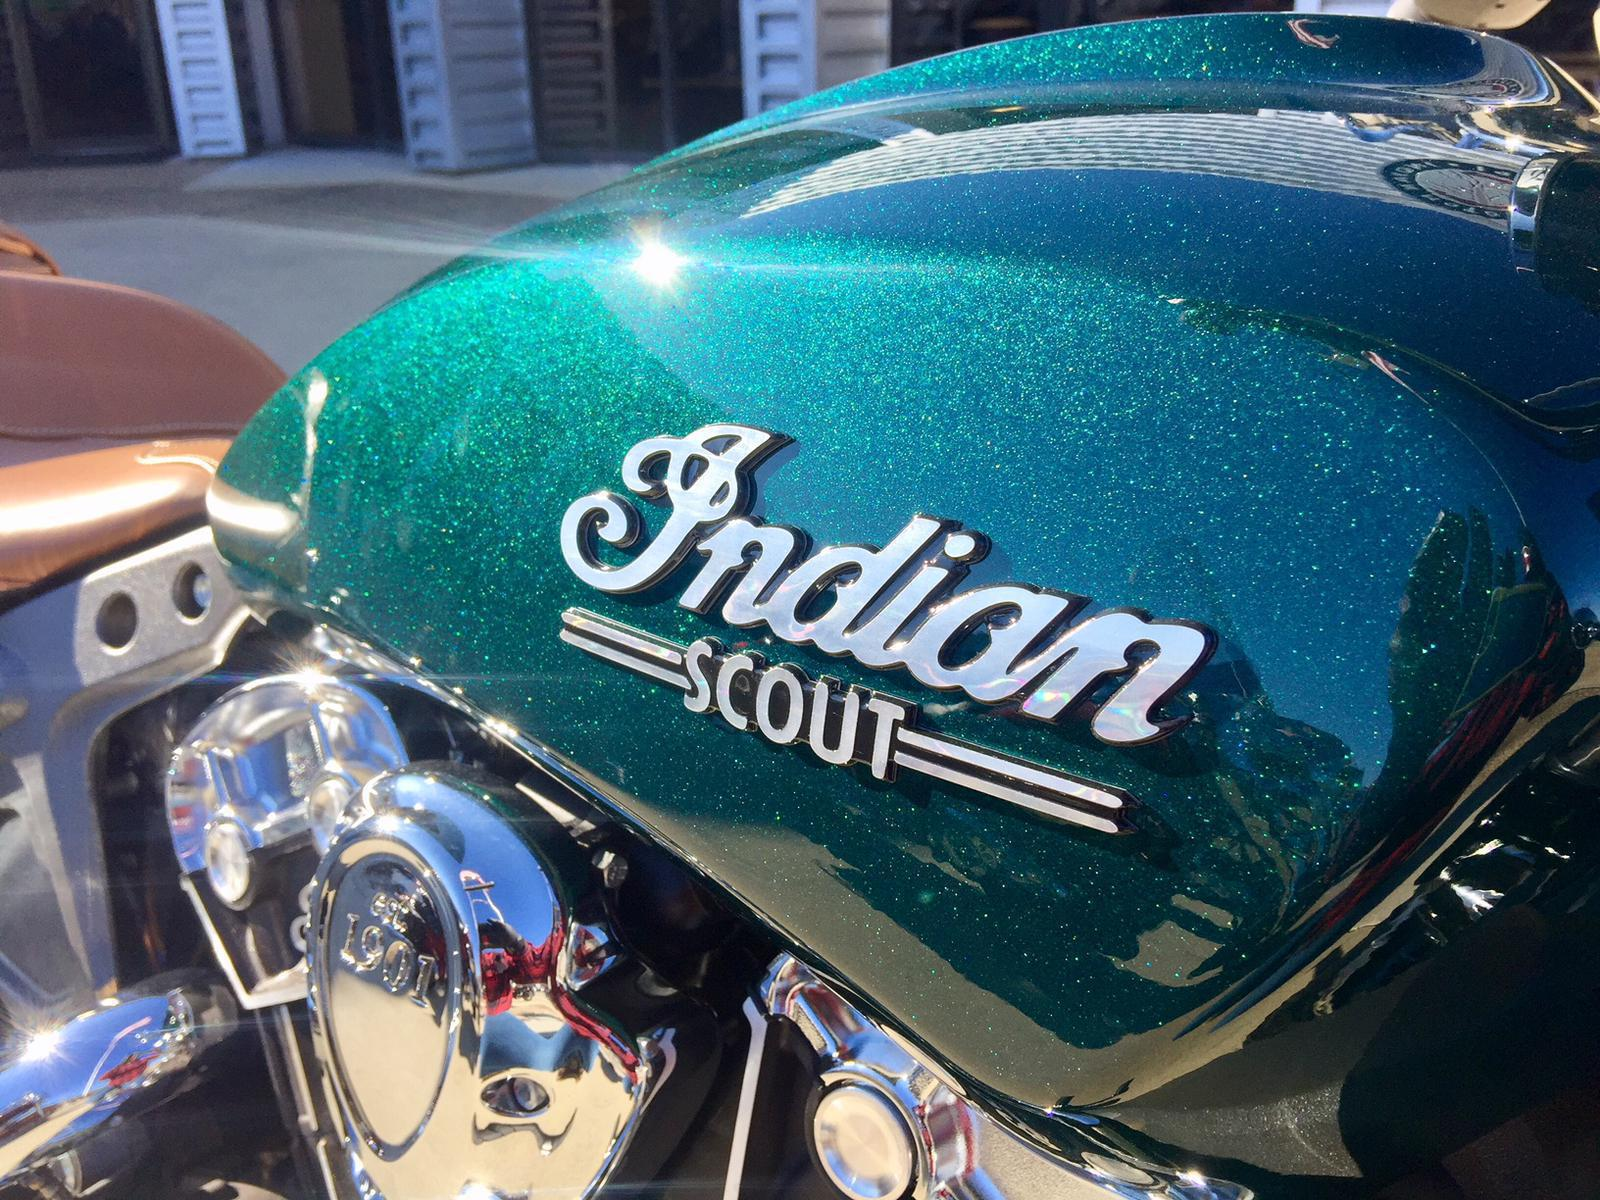 2018 Indian Motorcycle SCOUT For Sale In Shreveport LA